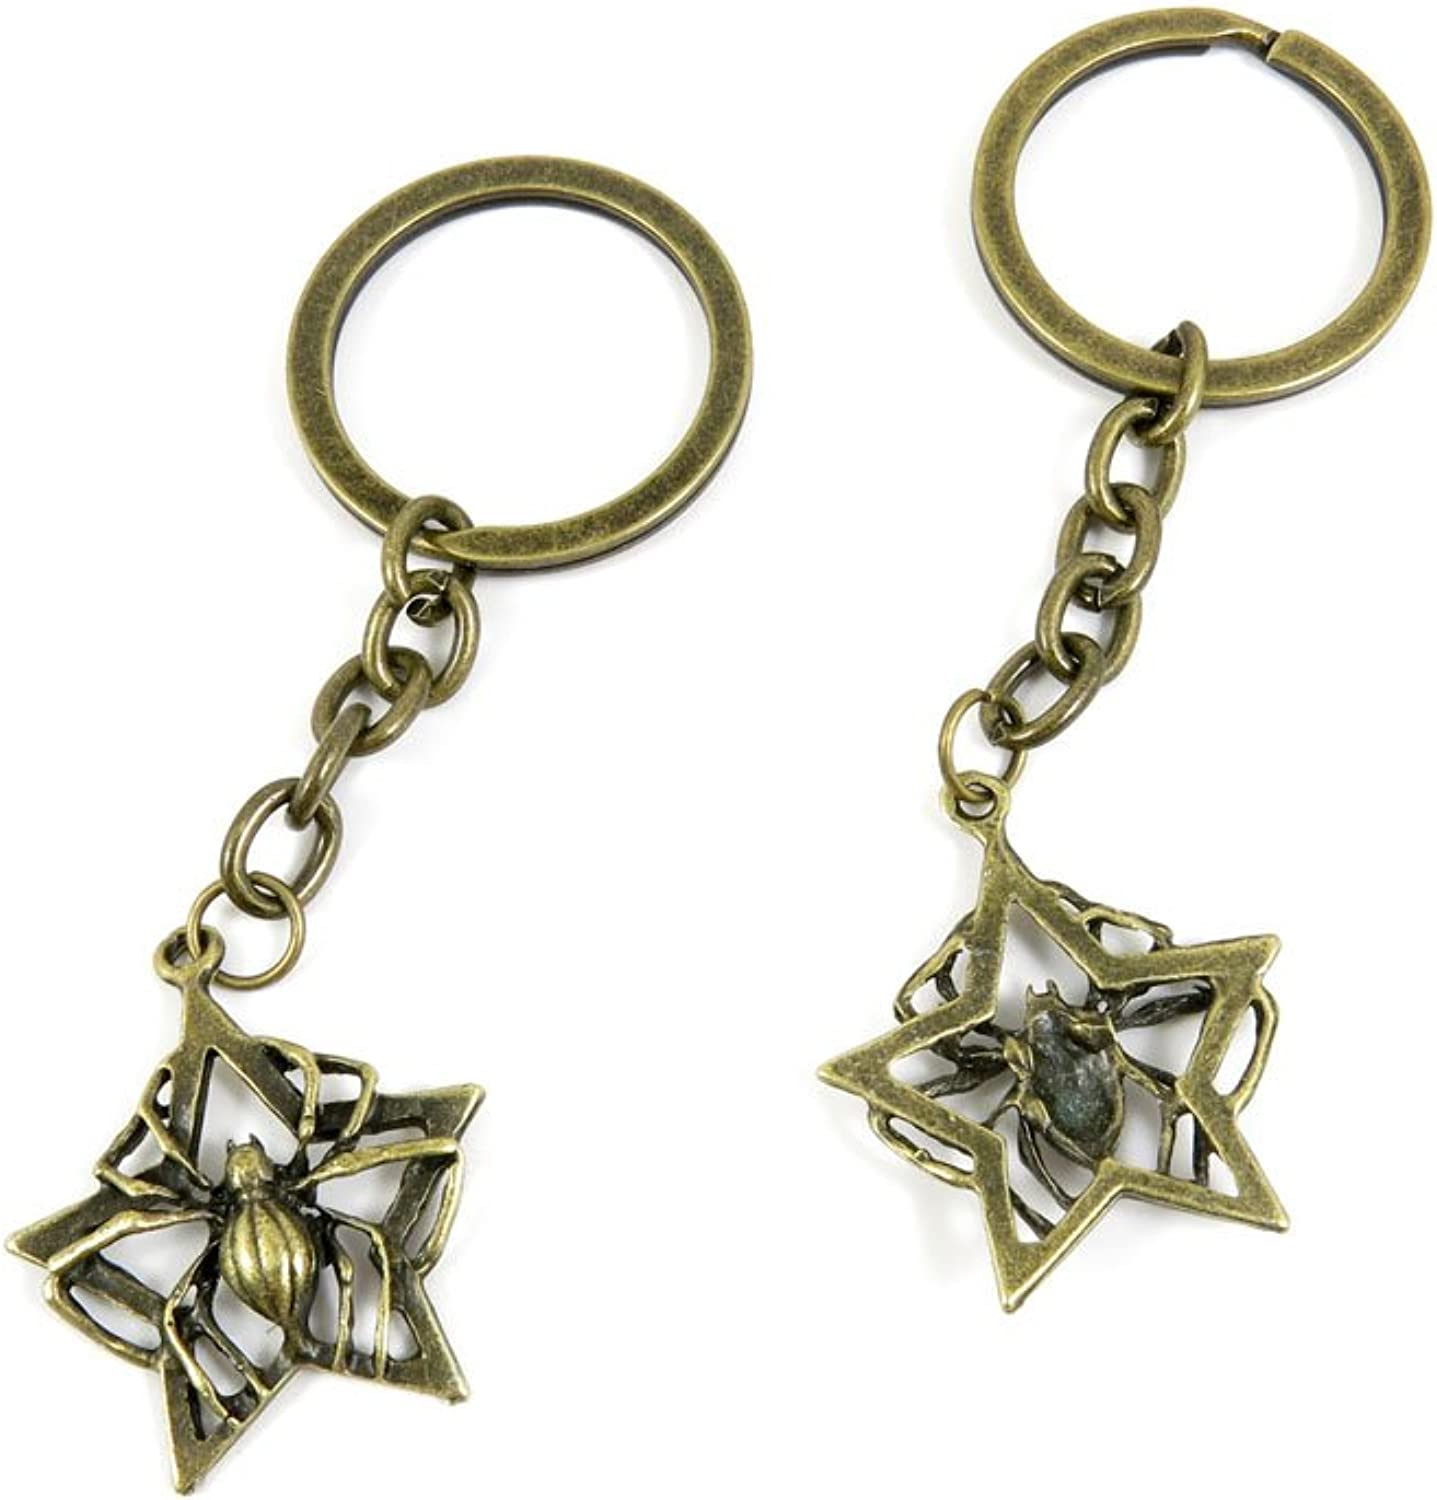 170 Pieces Fashion Jewelry Keyring Keychain Door Car Key Tag Ring Chain Supplier Supply Wholesale Bulk Lots W8MJ5 Spider